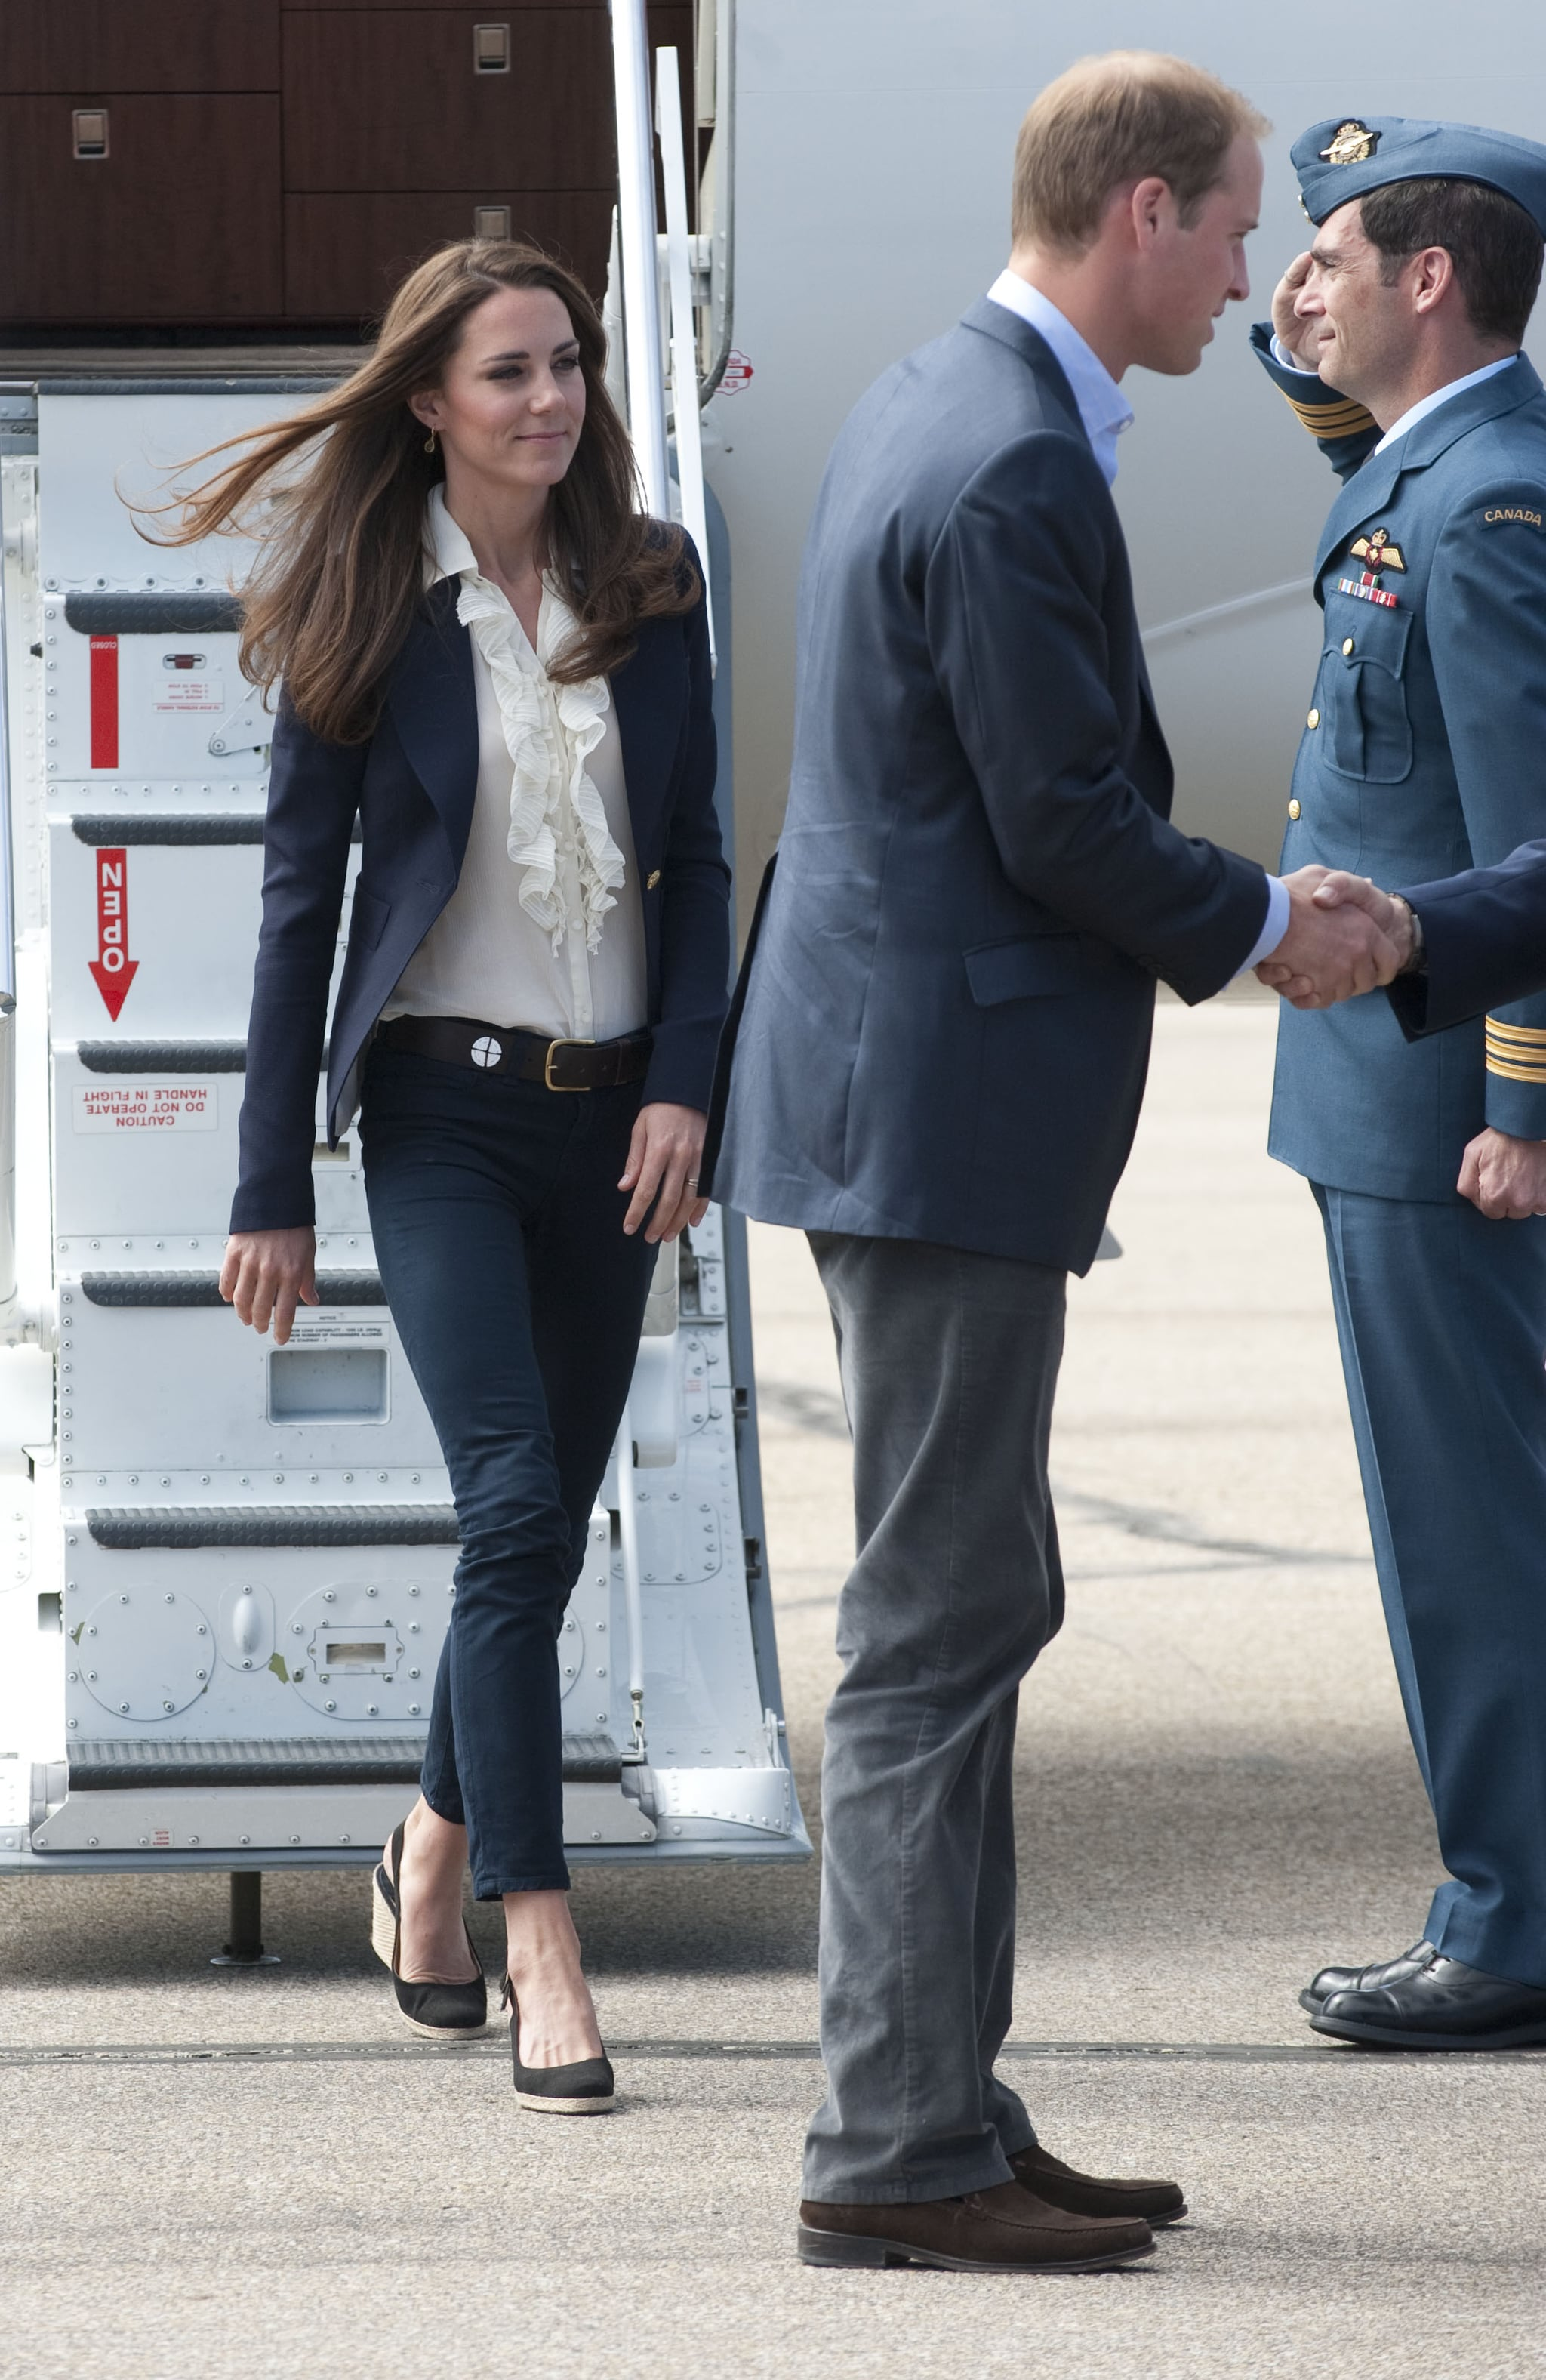 Prince William and Kate Middleton arrive in Alberta.